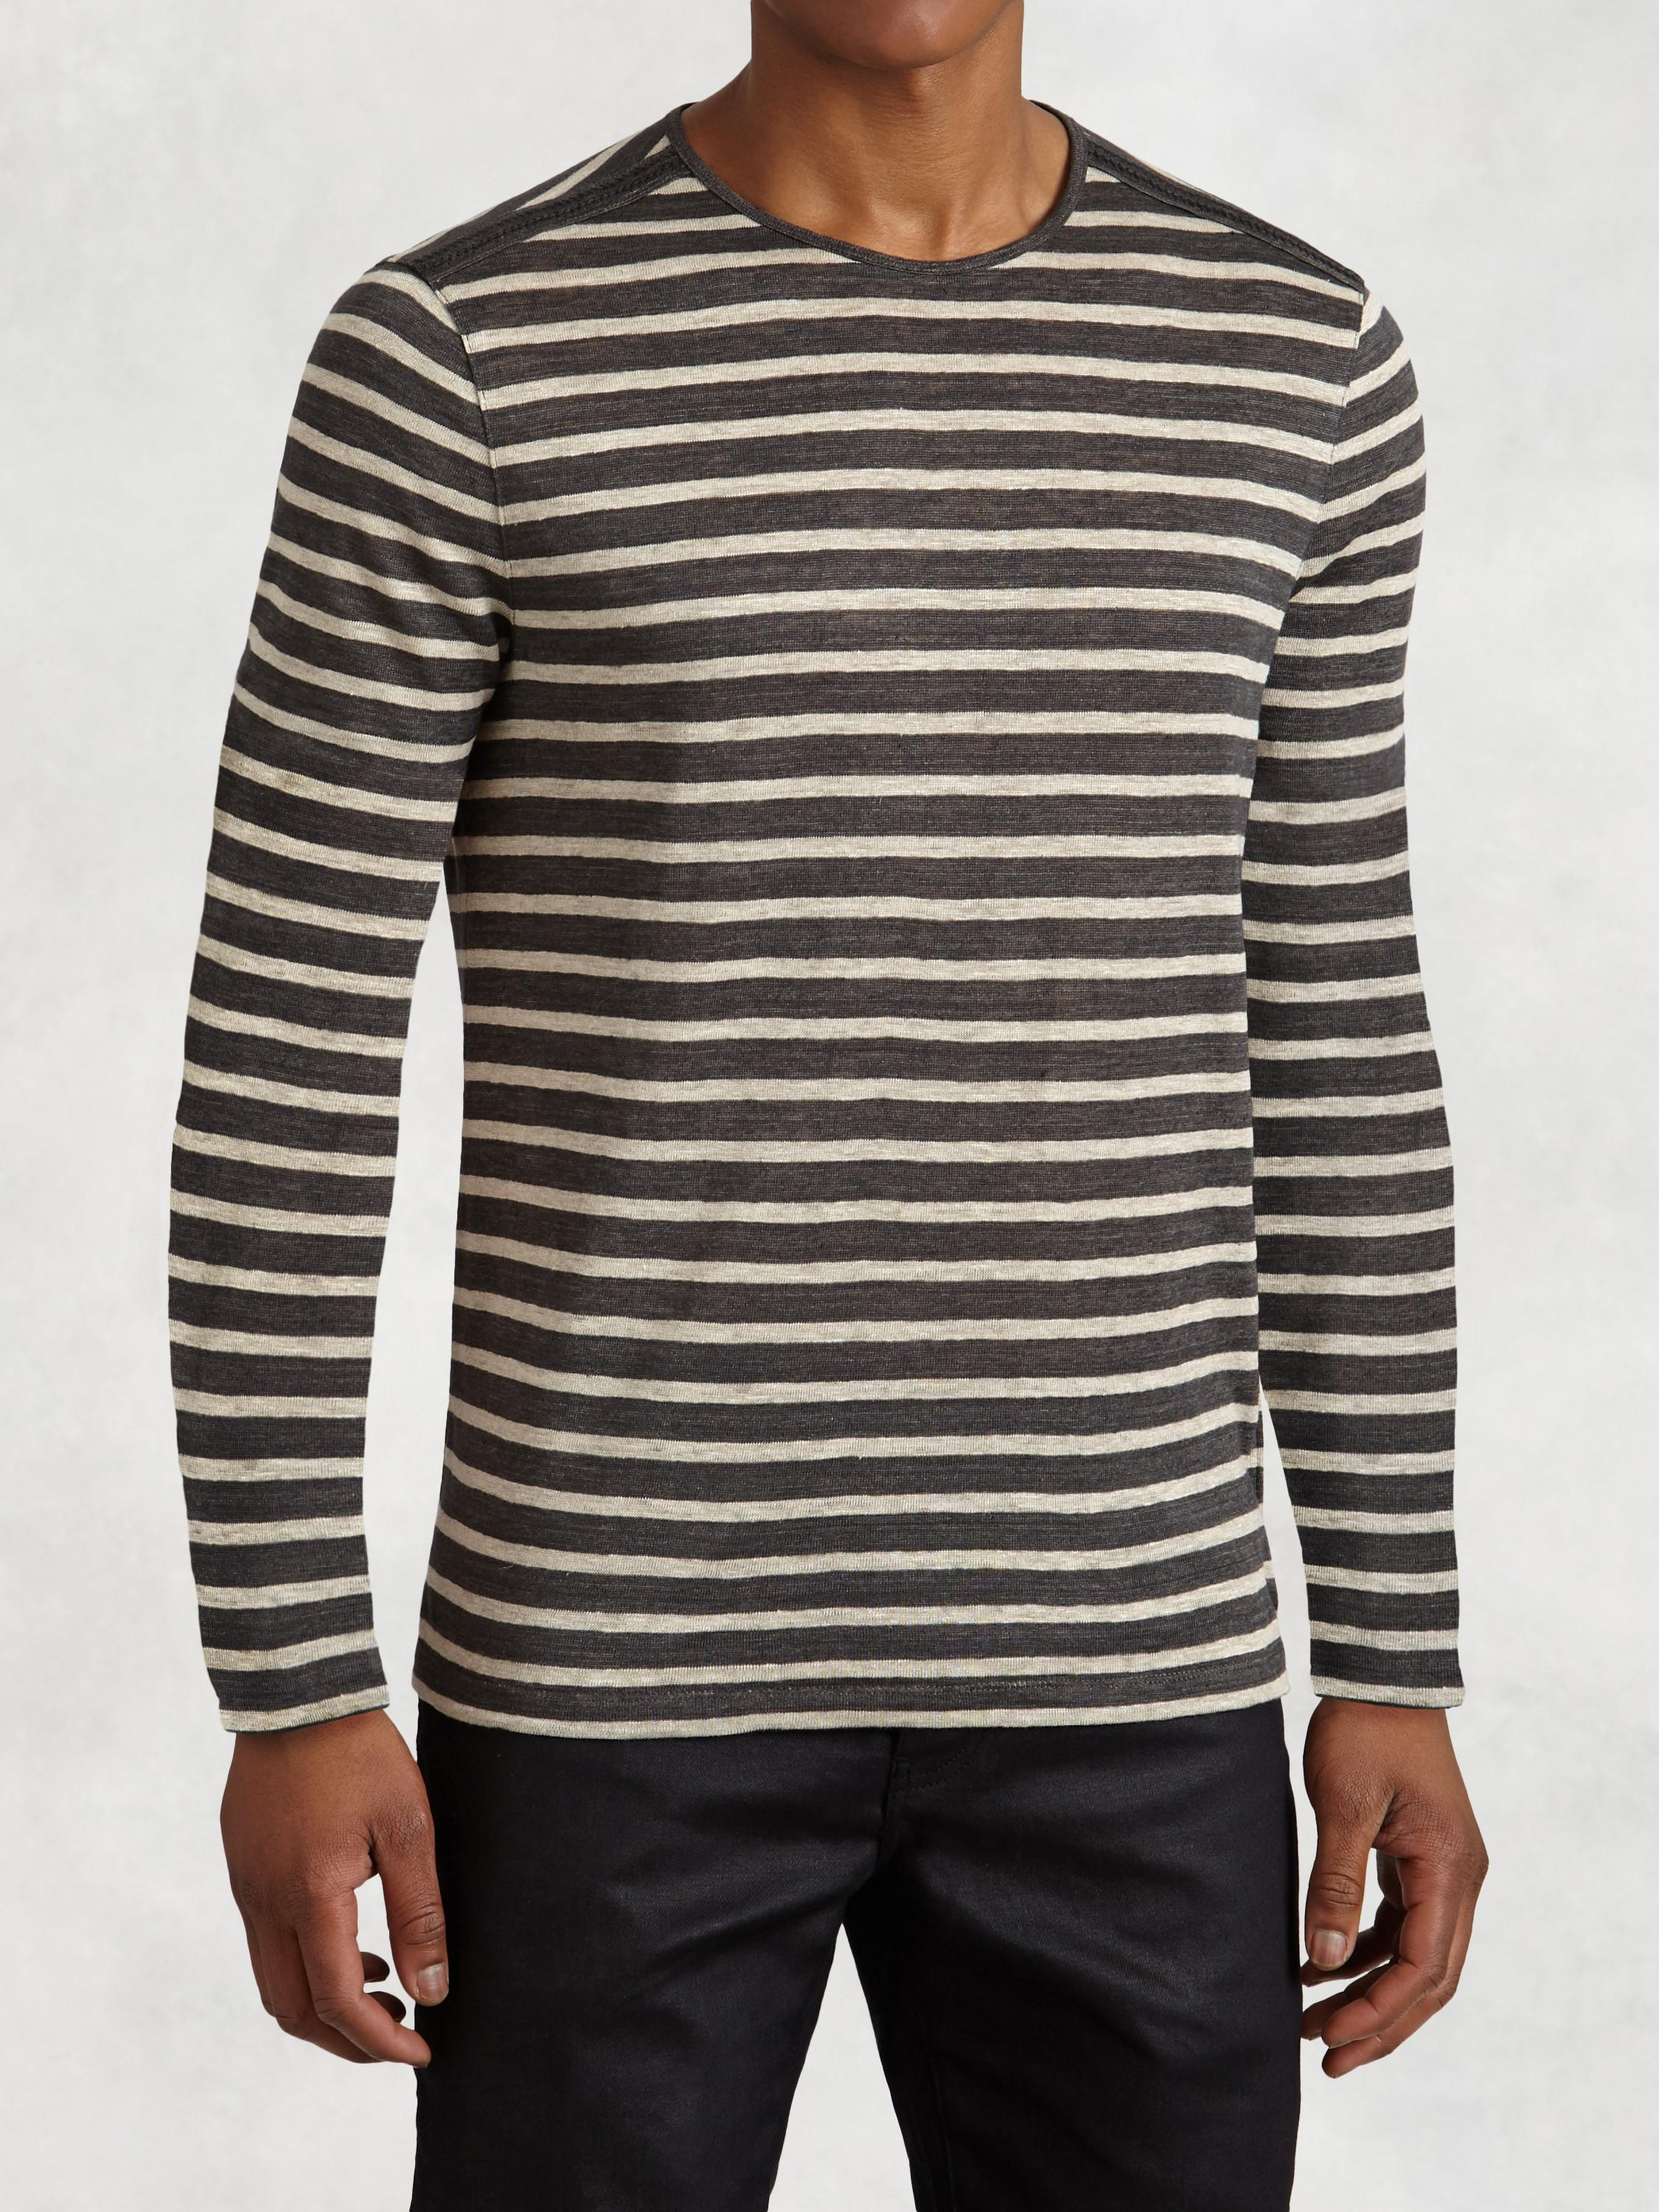 Striped Knit Crewneck